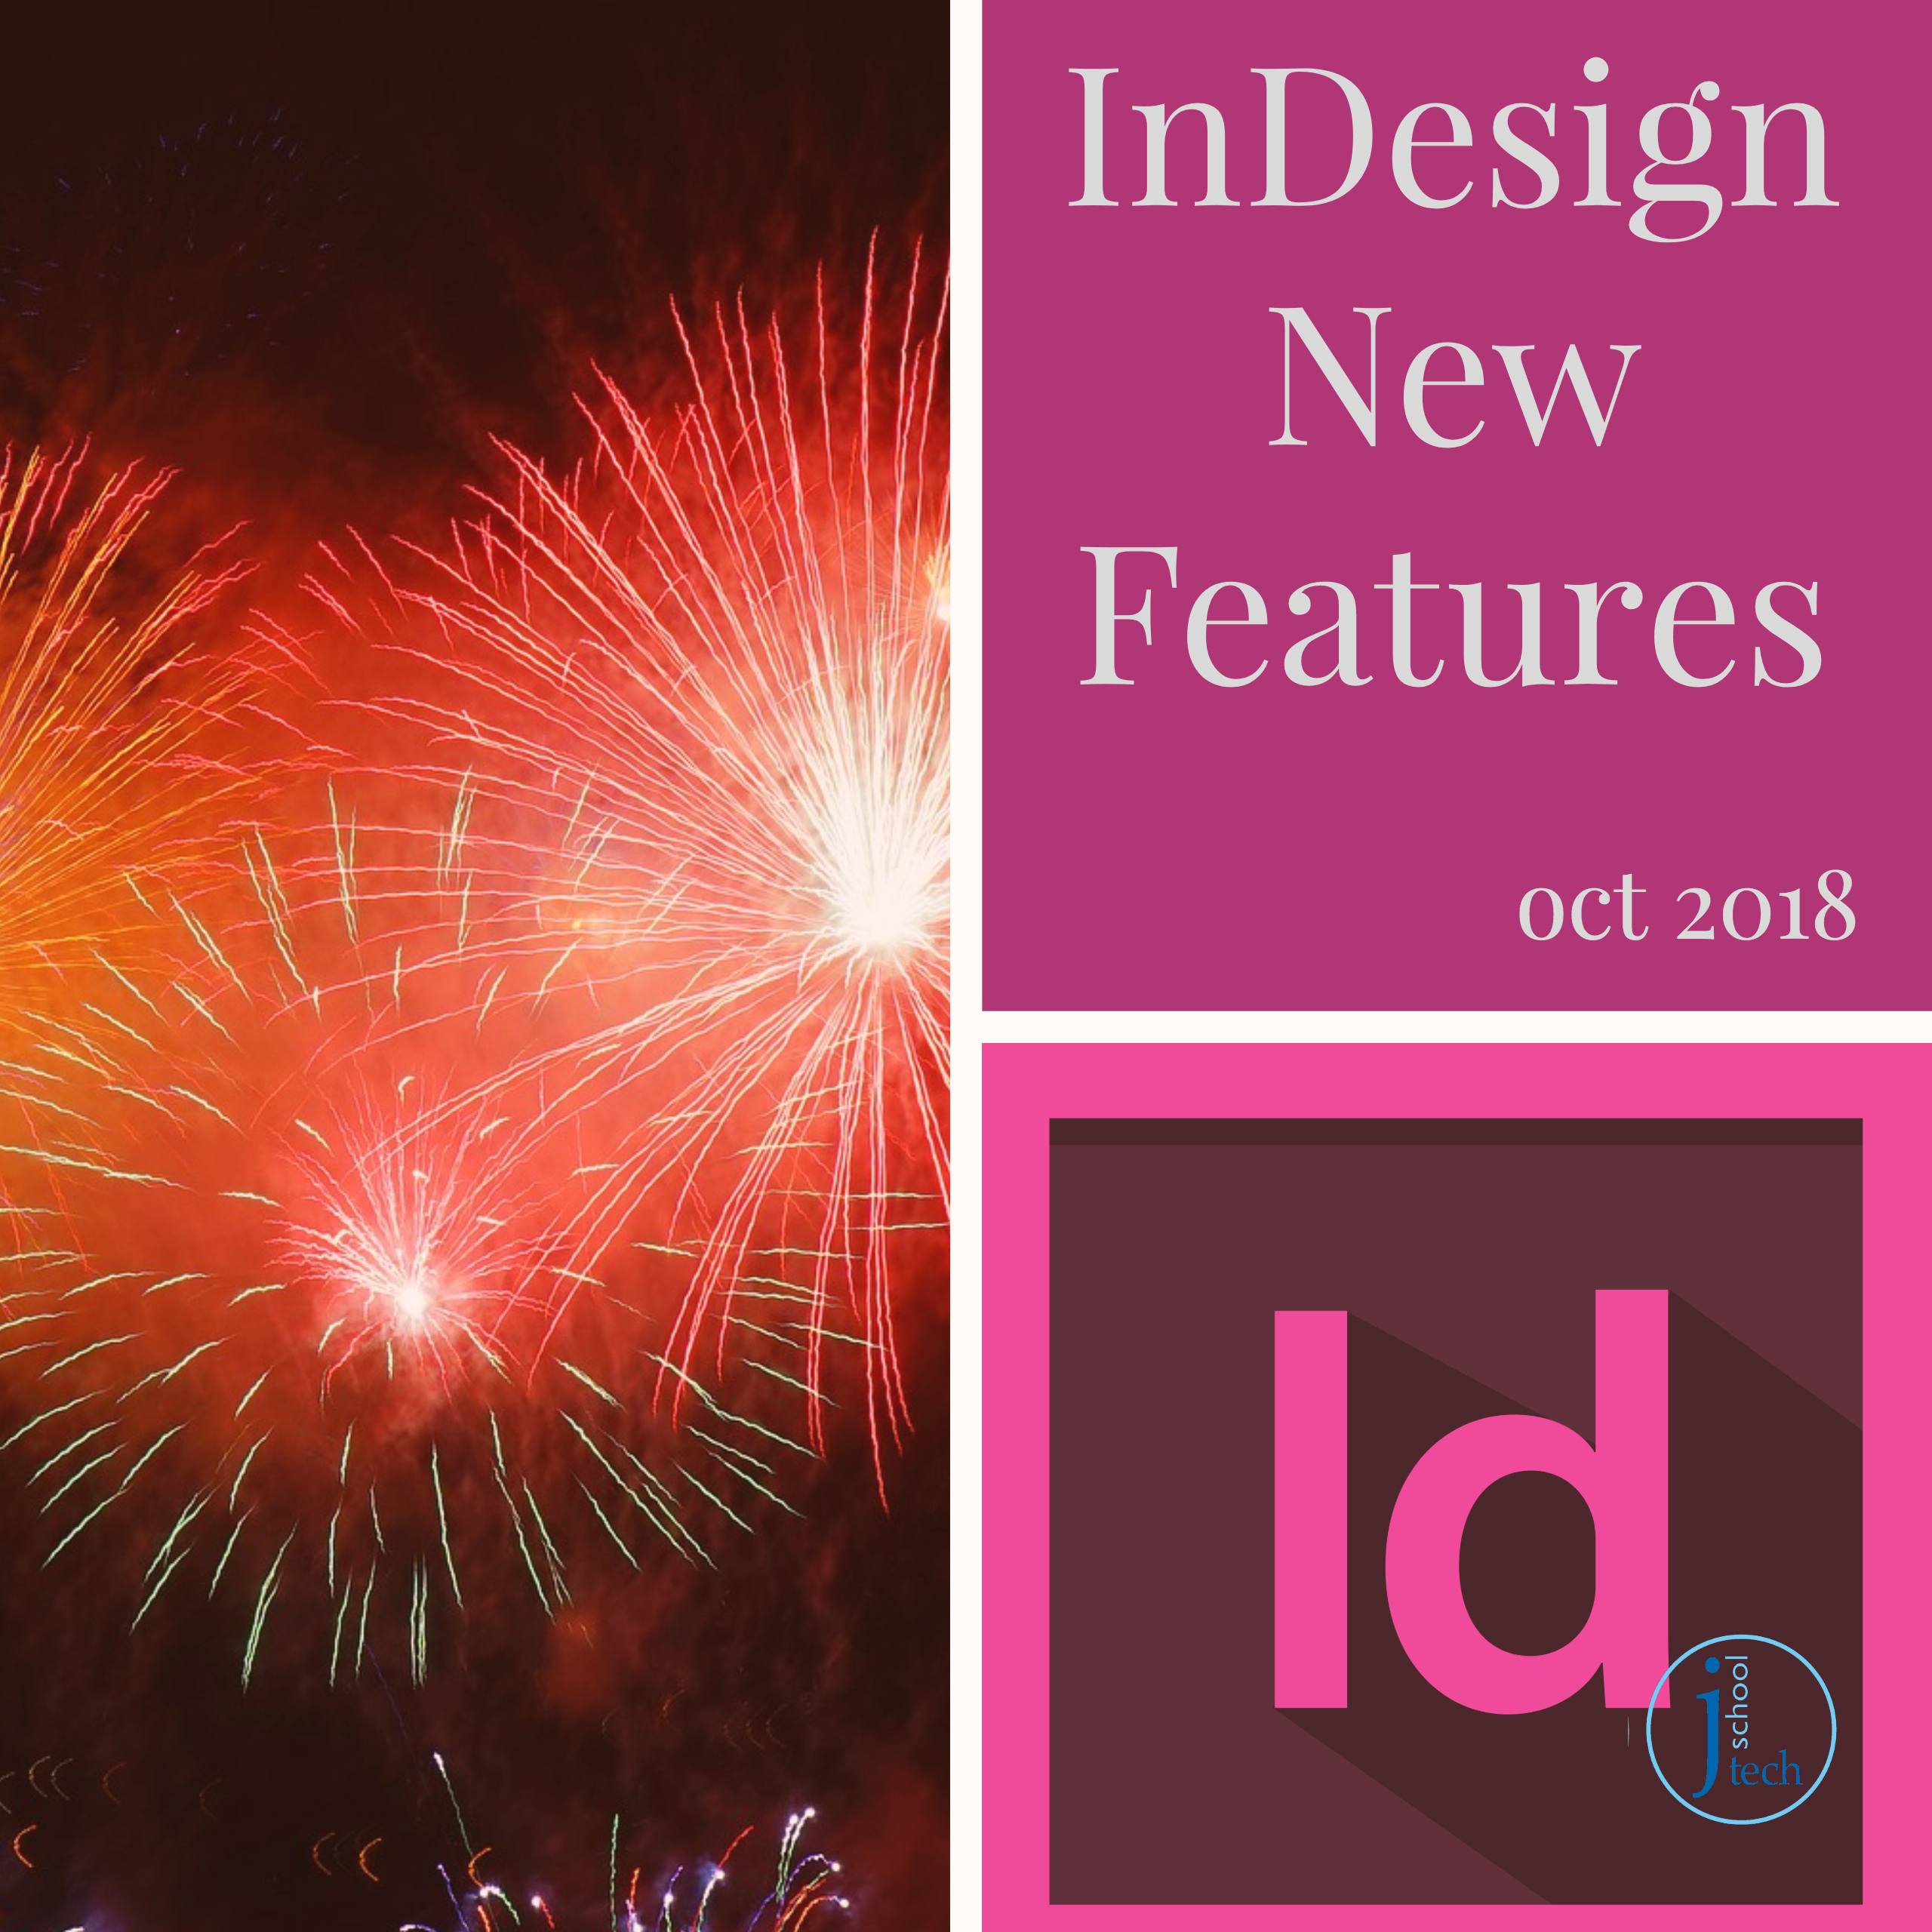 IND New Features